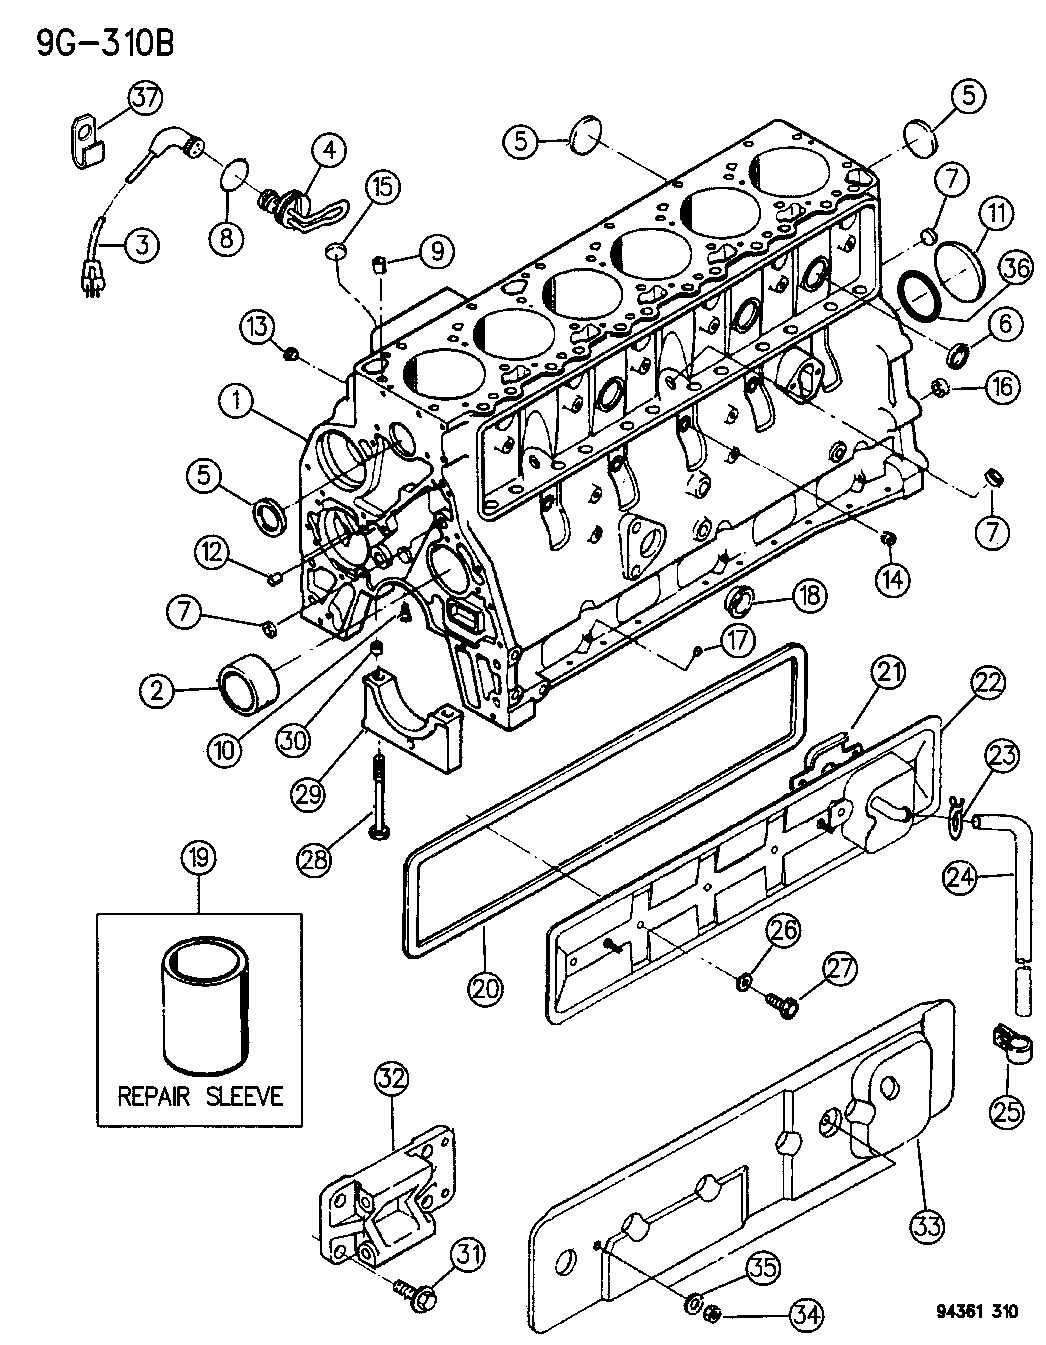 2001 Dodge Dakota Radiator, 2001, Free Engine Image For